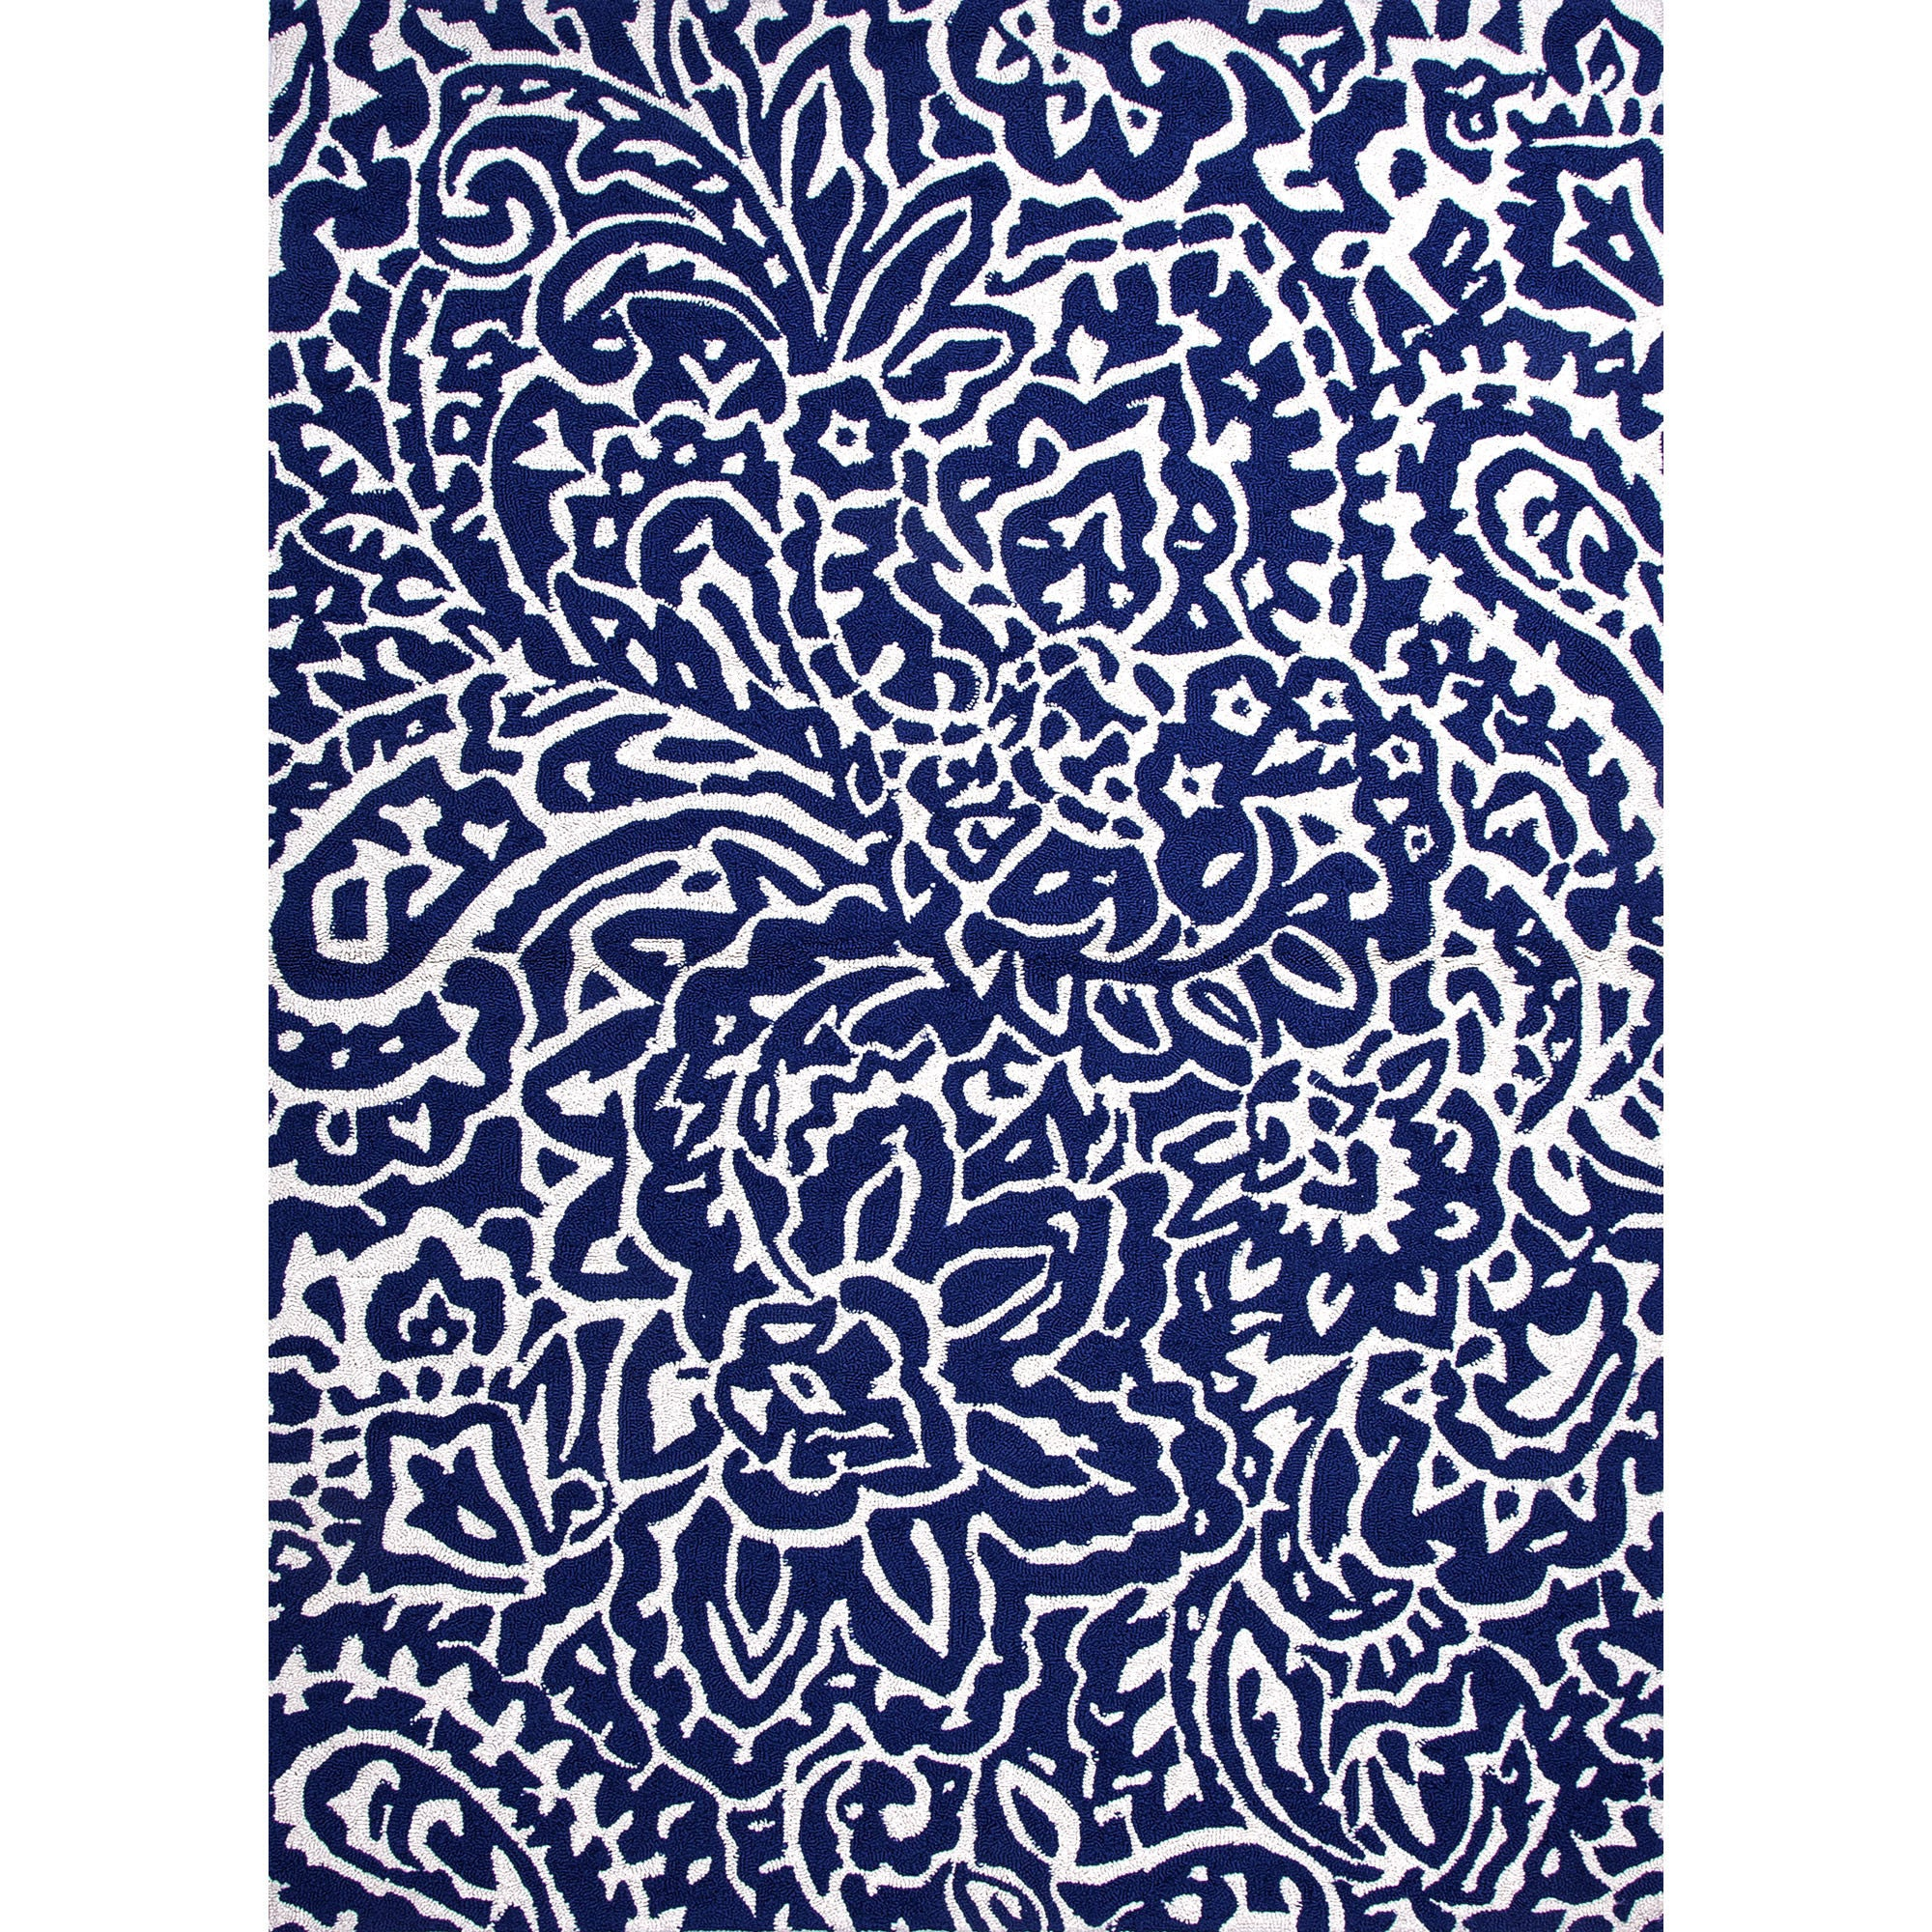 Jaipur Rugs Indooroutdoor Abstract Pattern Blue Ivory